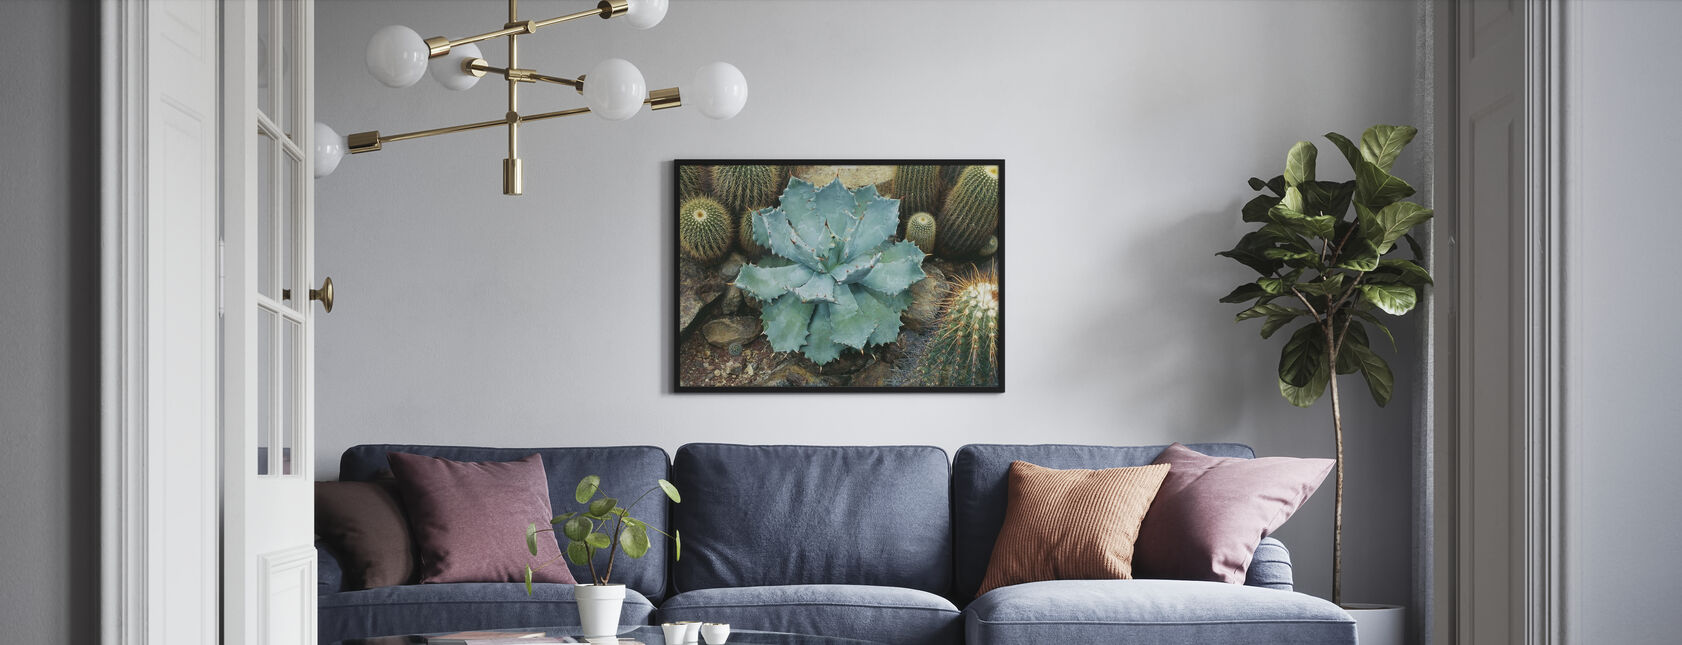 Agave Succulent - Poster - Living Room